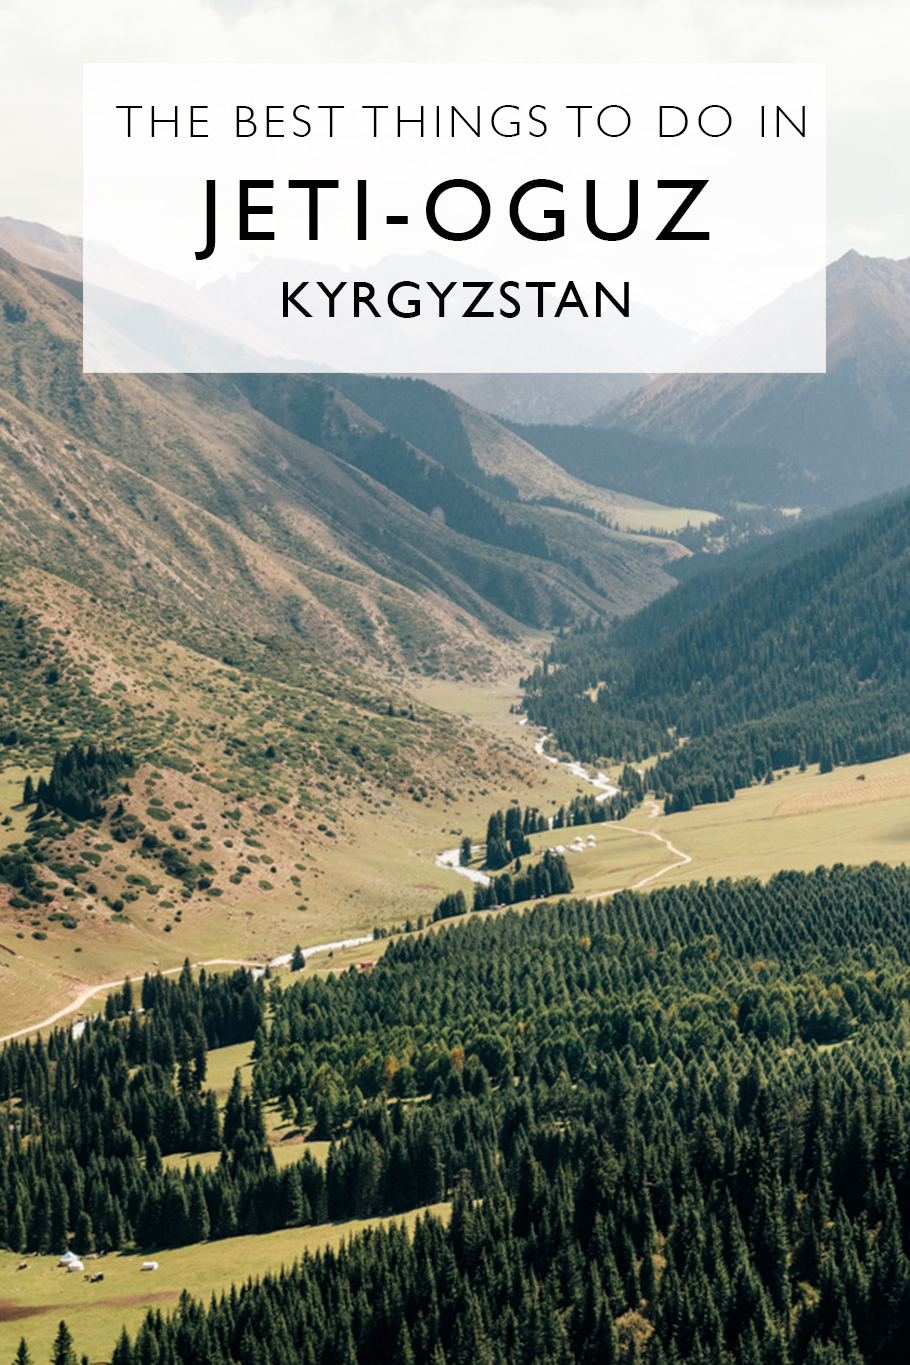 A Short Guide To Jeti-Oguz | Kyrgyzstan *** Things To Do In Jeti-Oguz, Kyrgyzstan | Hiking Near Karakol | Hiking In Kyrgyzstan | Day Trips From Karakol | Visiting The Valley Of Flowers | The Seven Bulls Of Kyrgyzstan